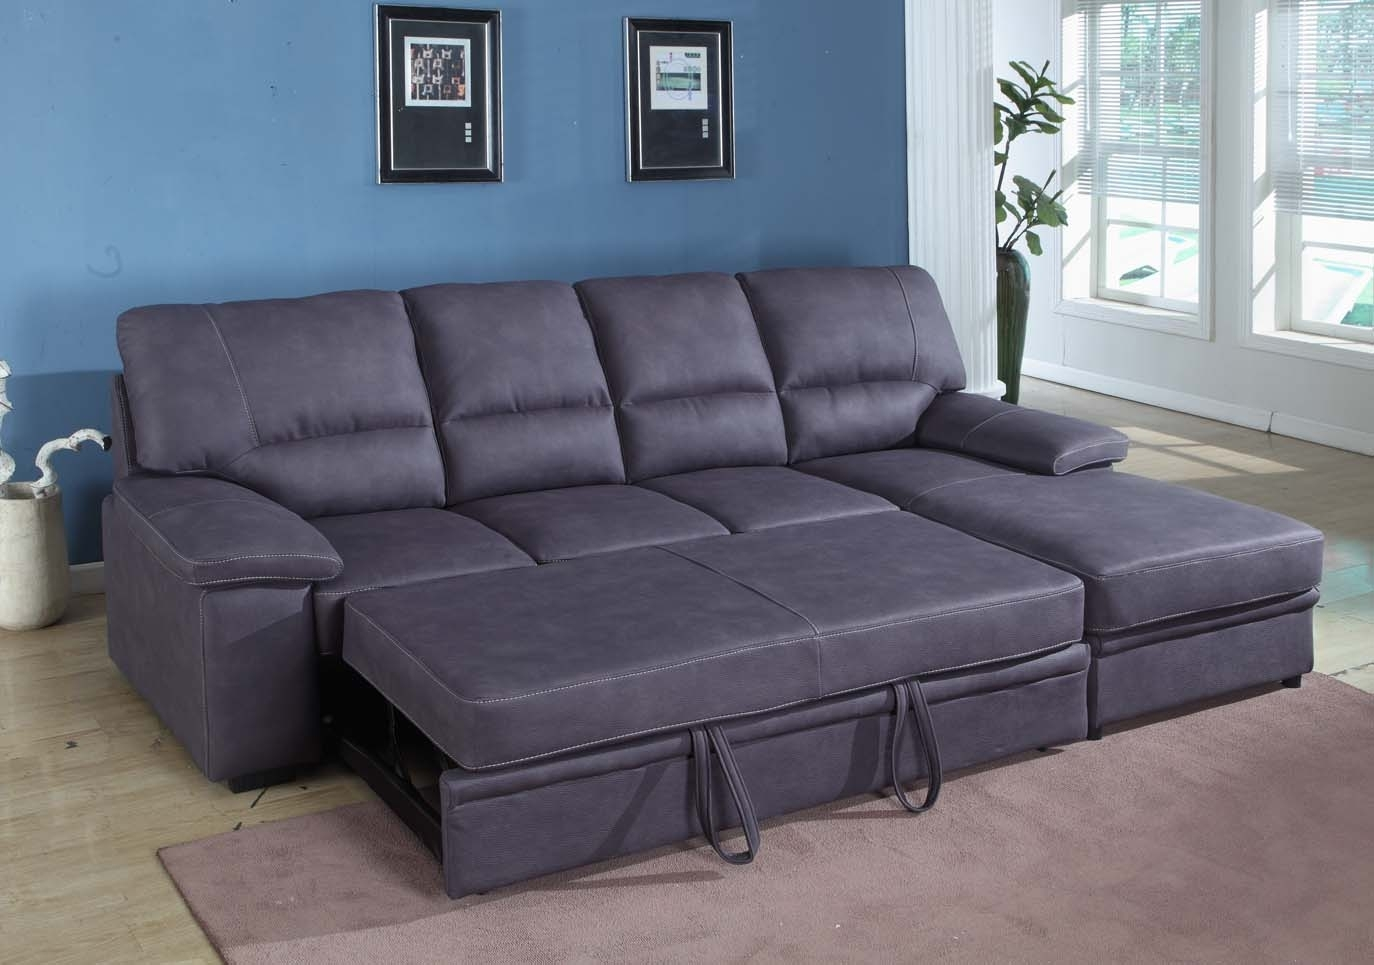 Furniture : Sectional Sofa Nj Best Sectional Sofa Under 500 regarding Vt Sectional Sofas (Image 6 of 10)